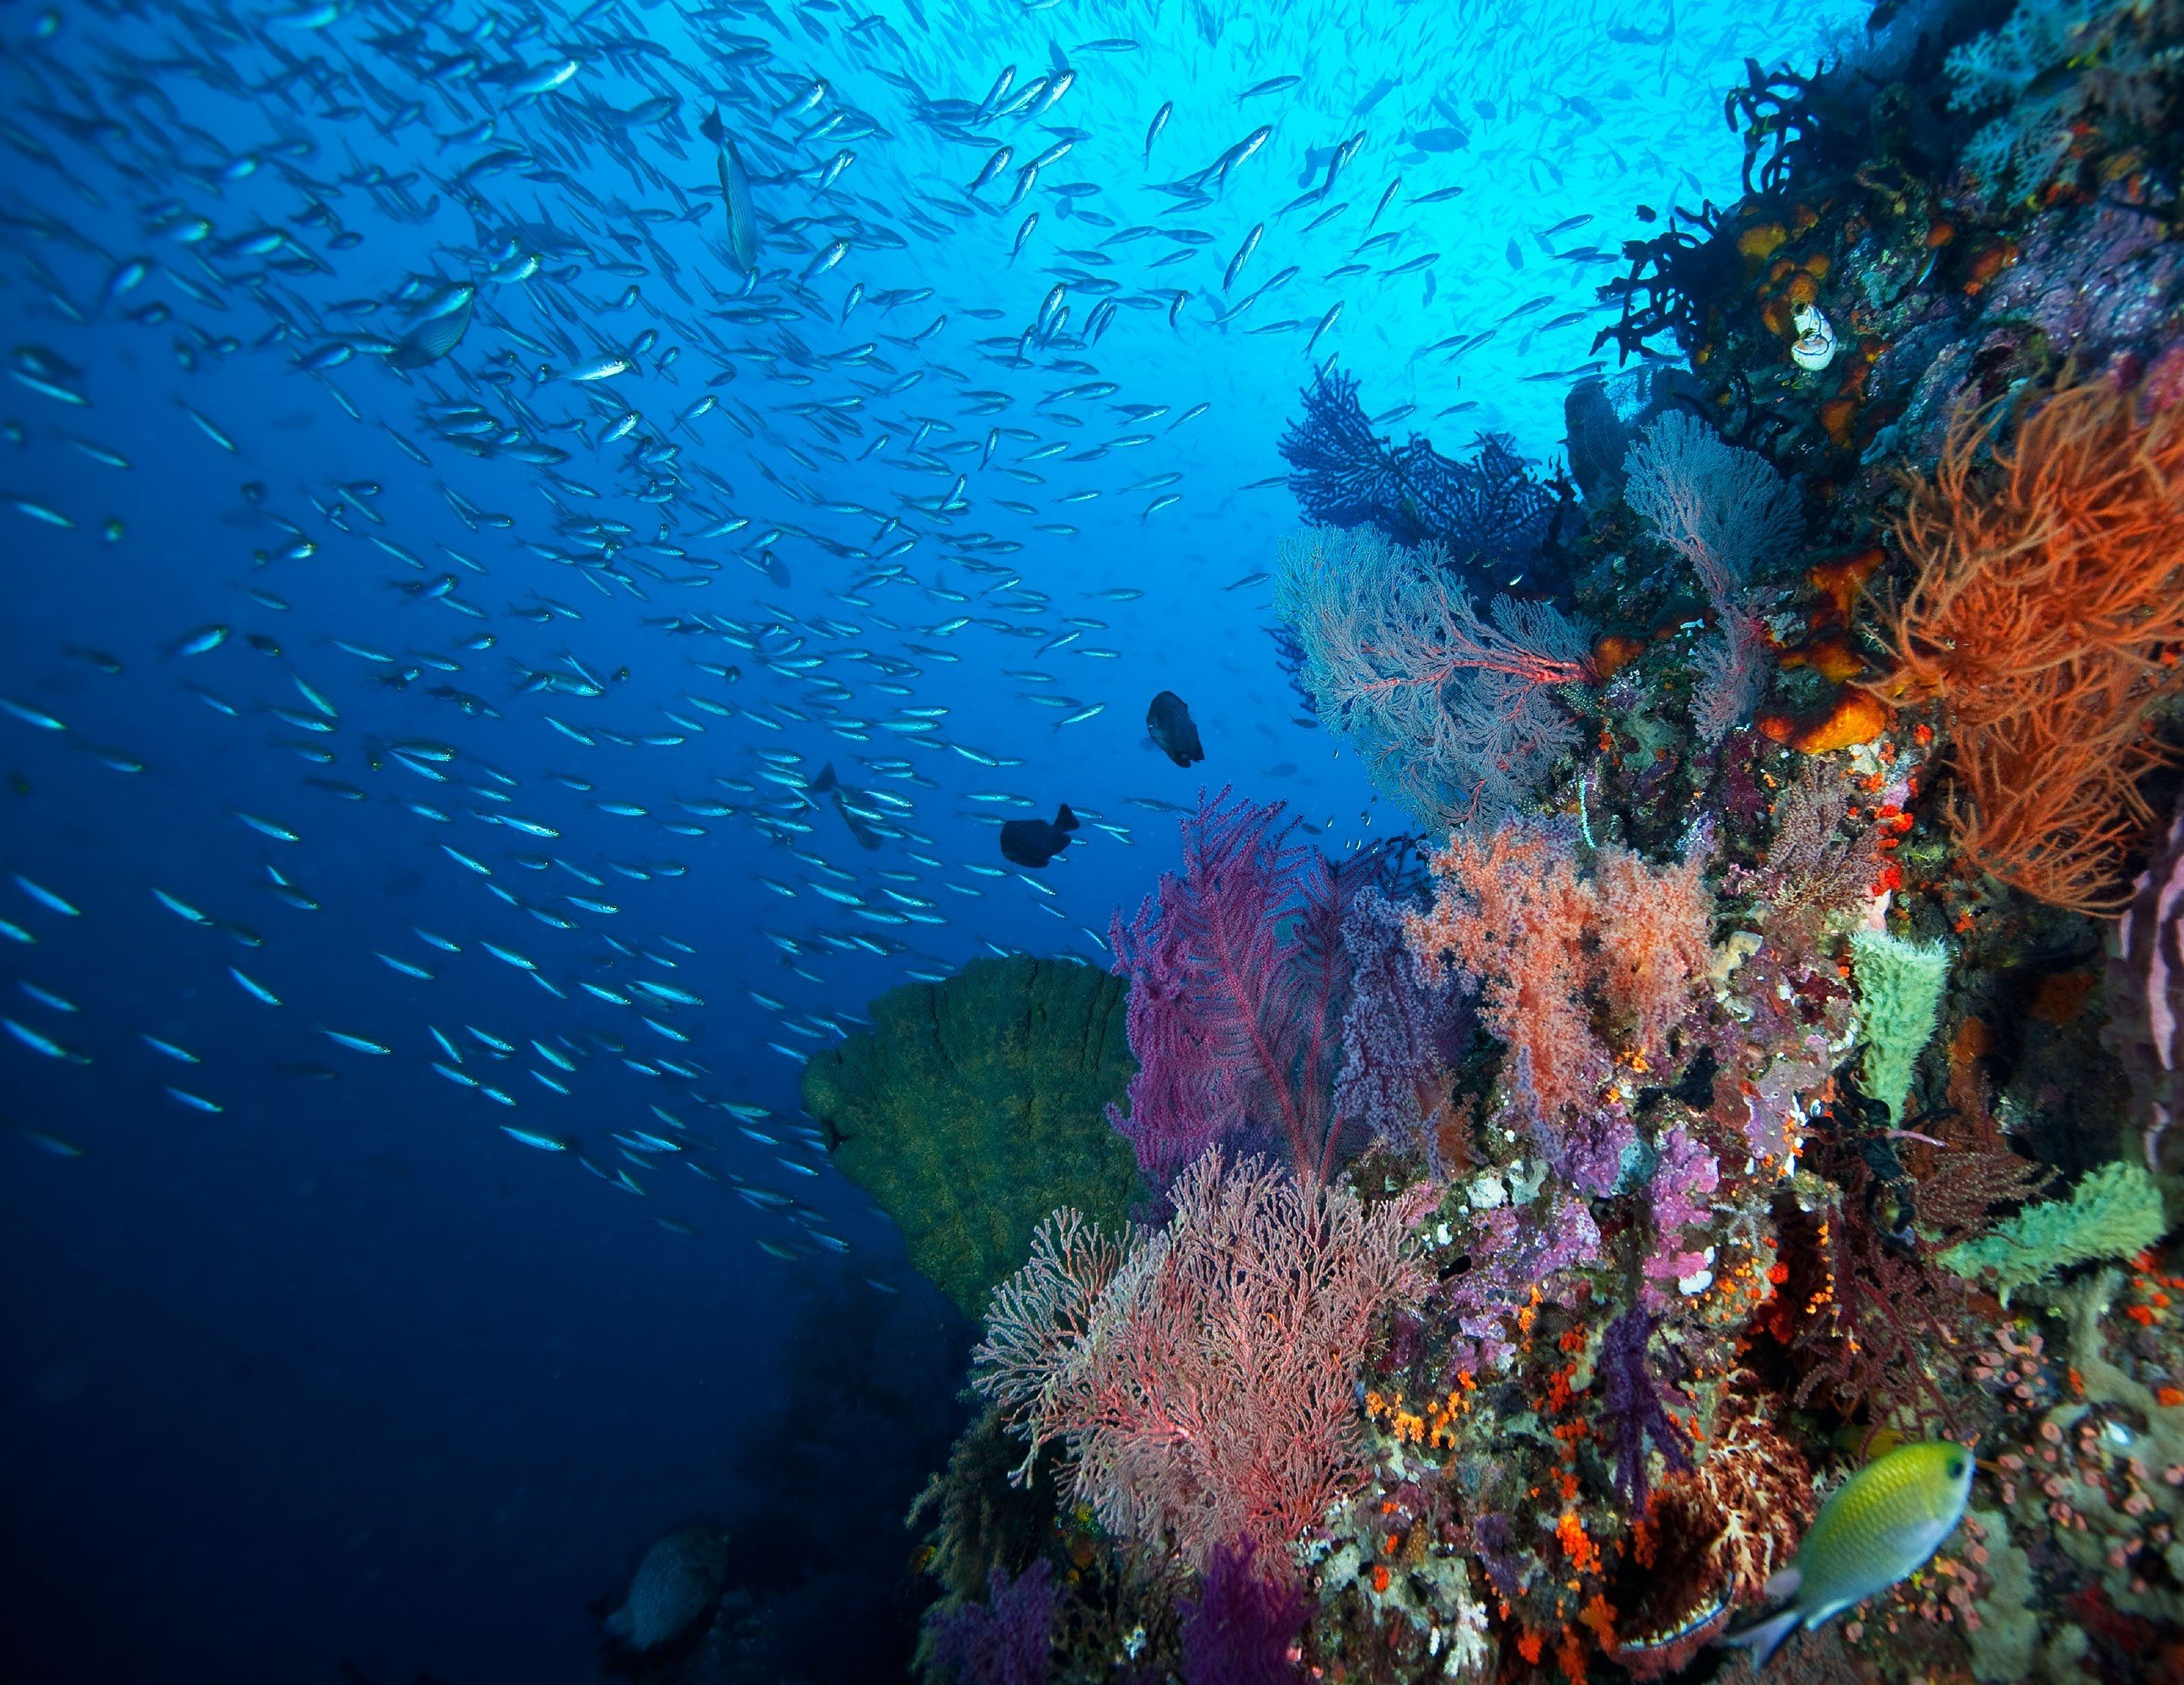 Trip Ideas habitat reef coral reef marine biology coral underwater coral reef fish natural environment biology Ocean Sea Scuba Diving diving water sport plant underwater diving colored